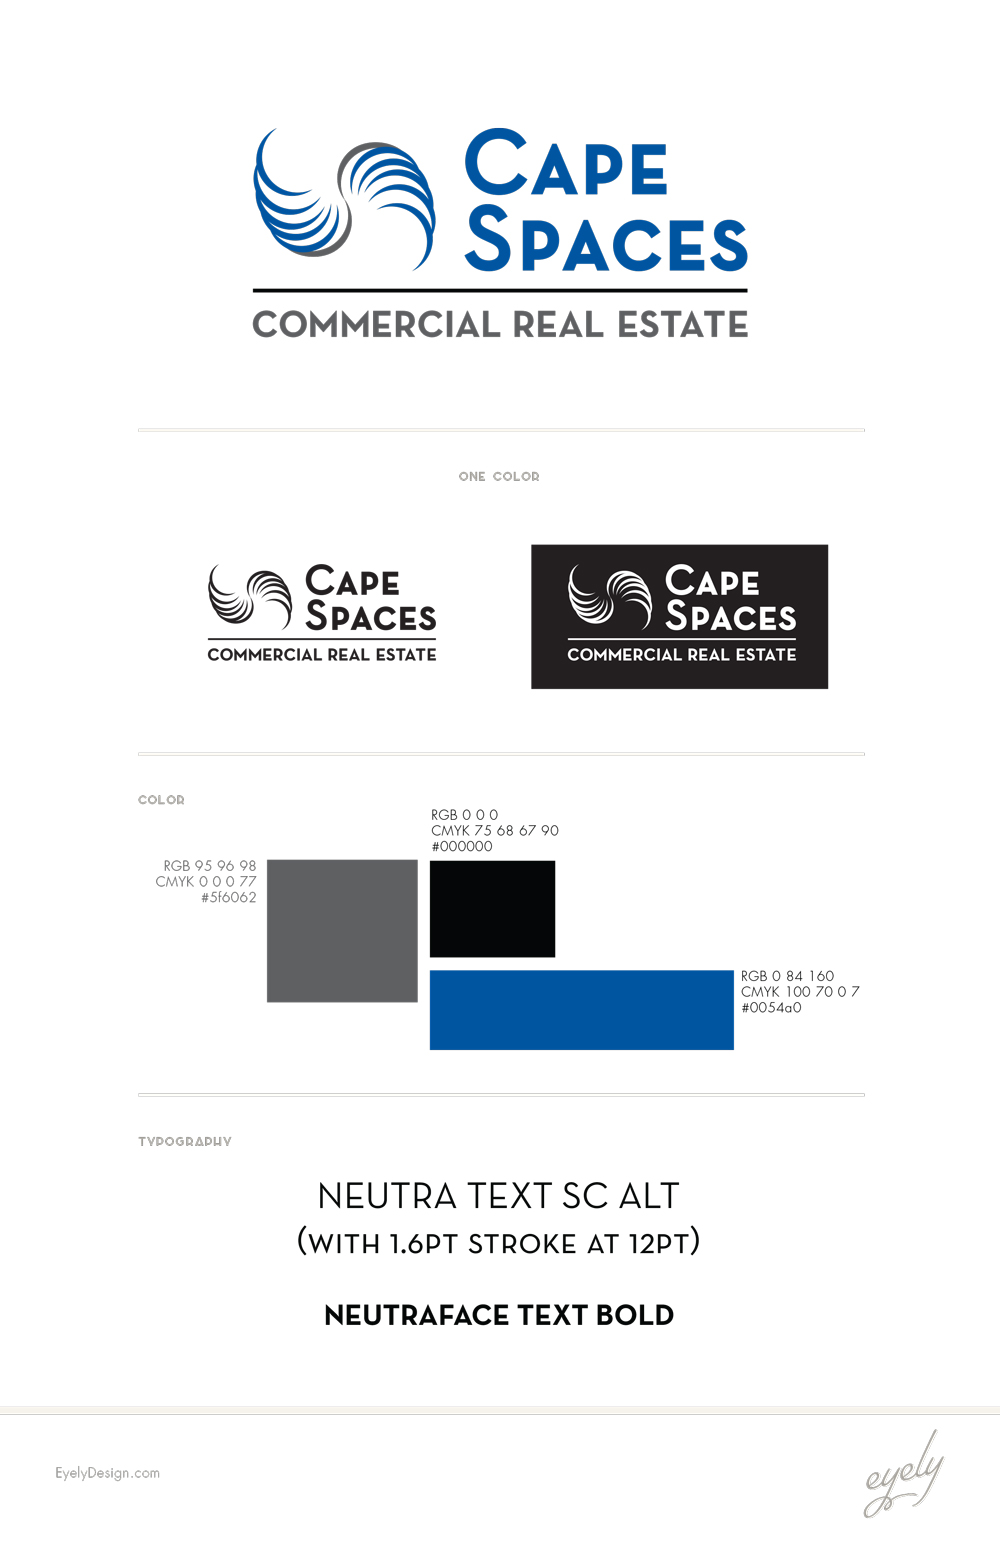 capespaces nj commercial real estate logo design by eyely design